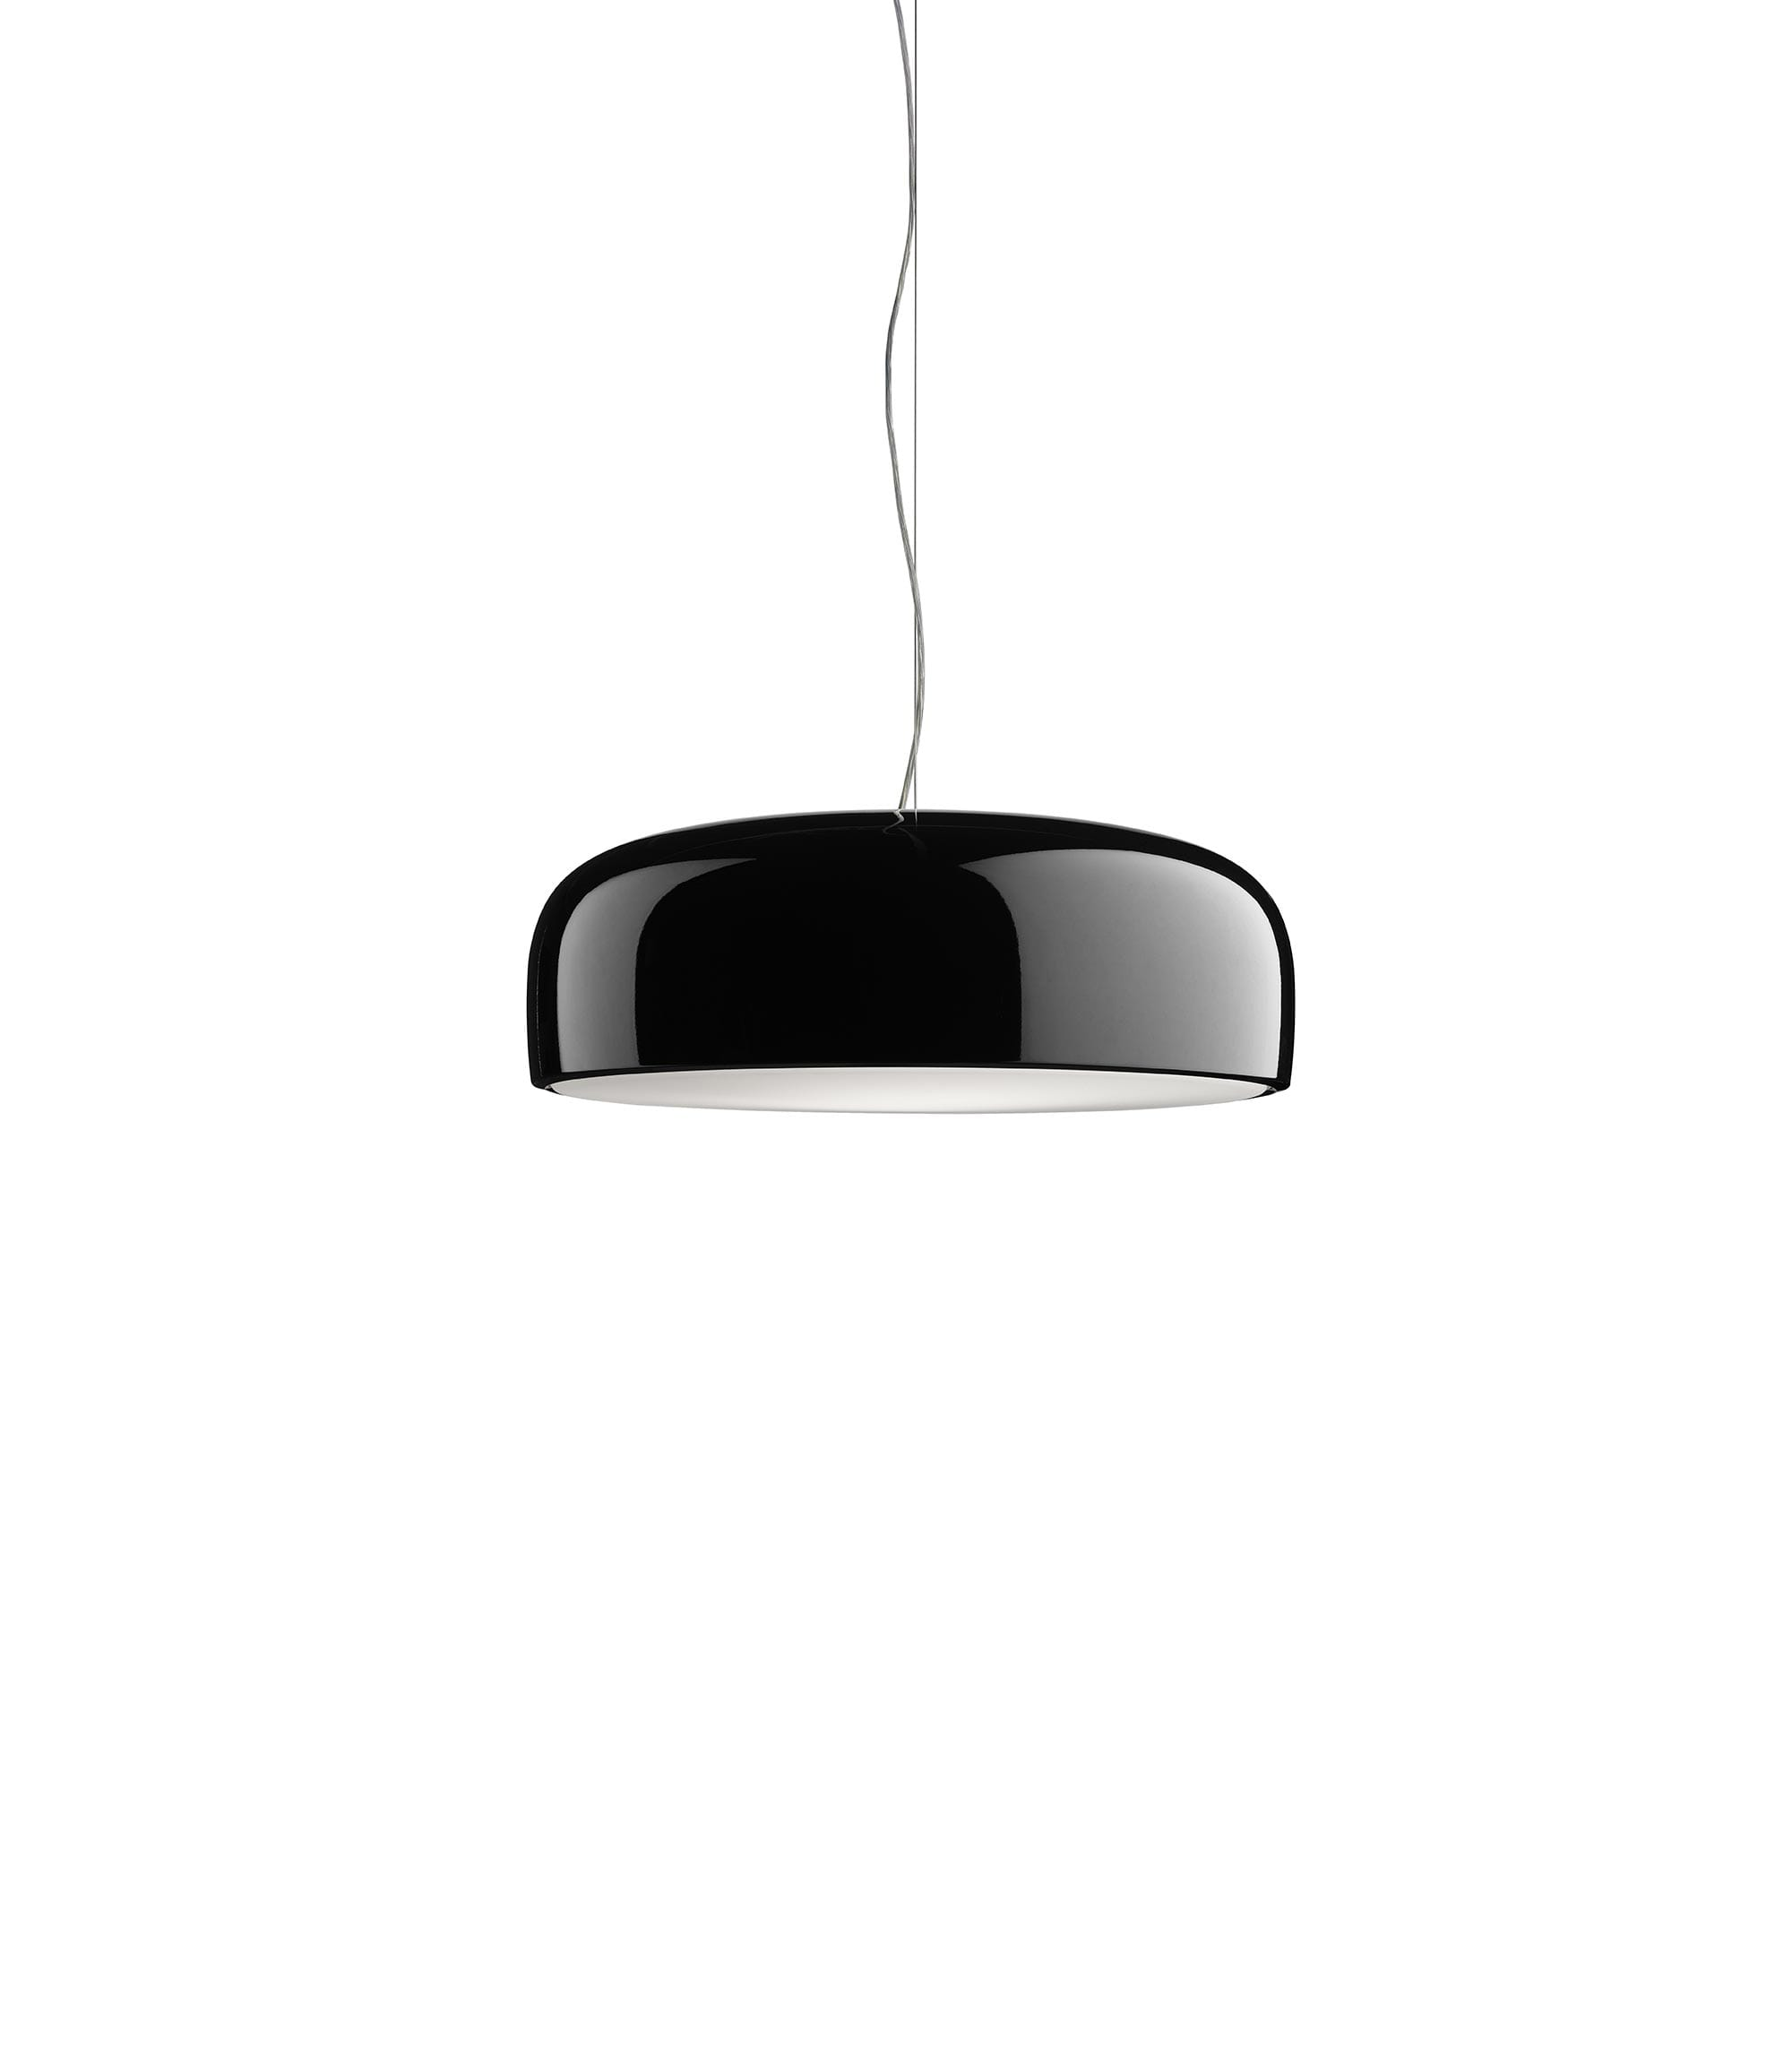 Smithfield suspension morrison flos F1367030 product still life big